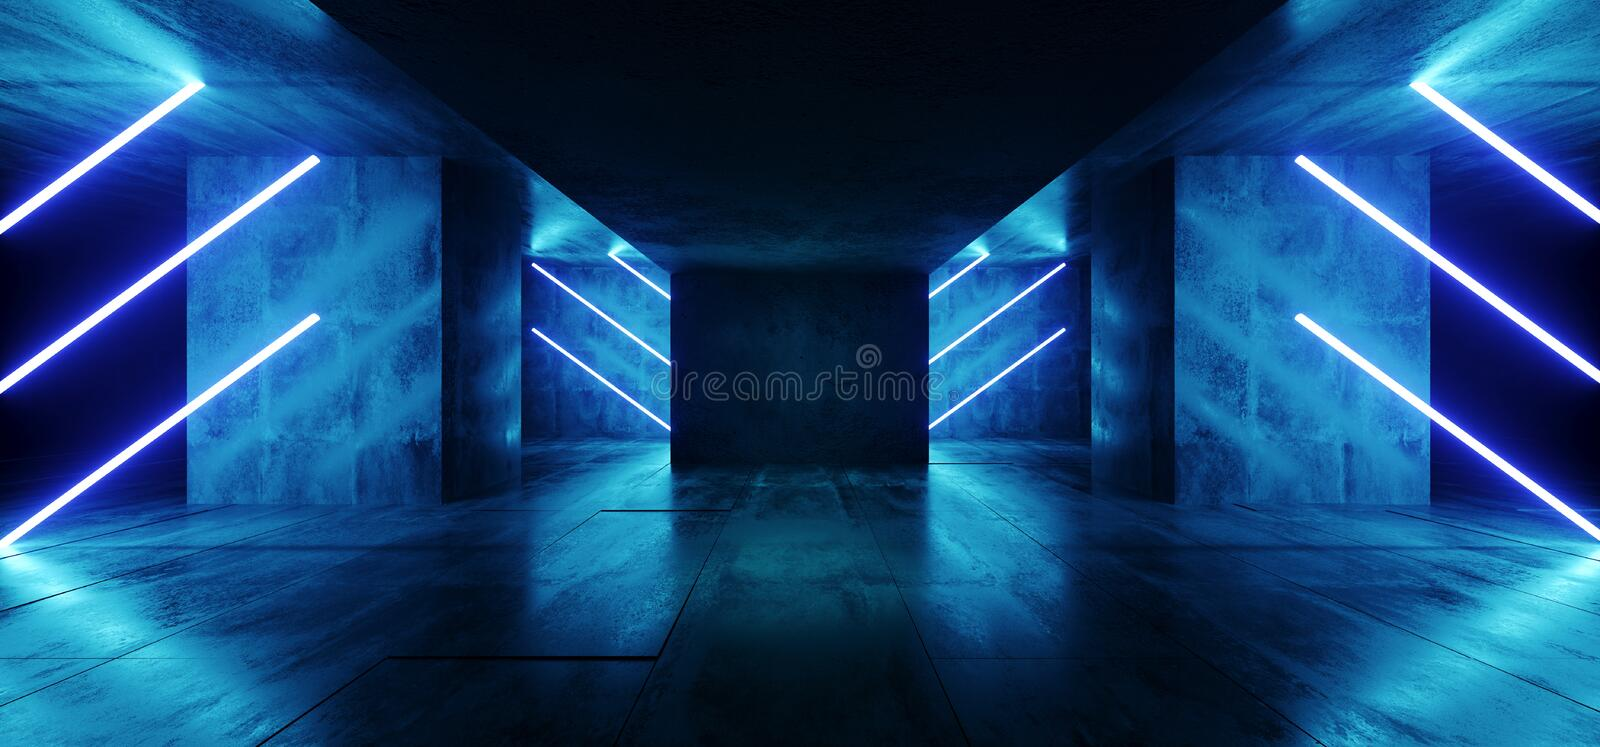 Sci Fi Neon Cyber Futuristic Modern Retro Alien Dance Club Glowing Vibrant Blue Lights In Dark Empty Grunge Concrete Refelctive. Room Corrior Background 3D royalty free illustration